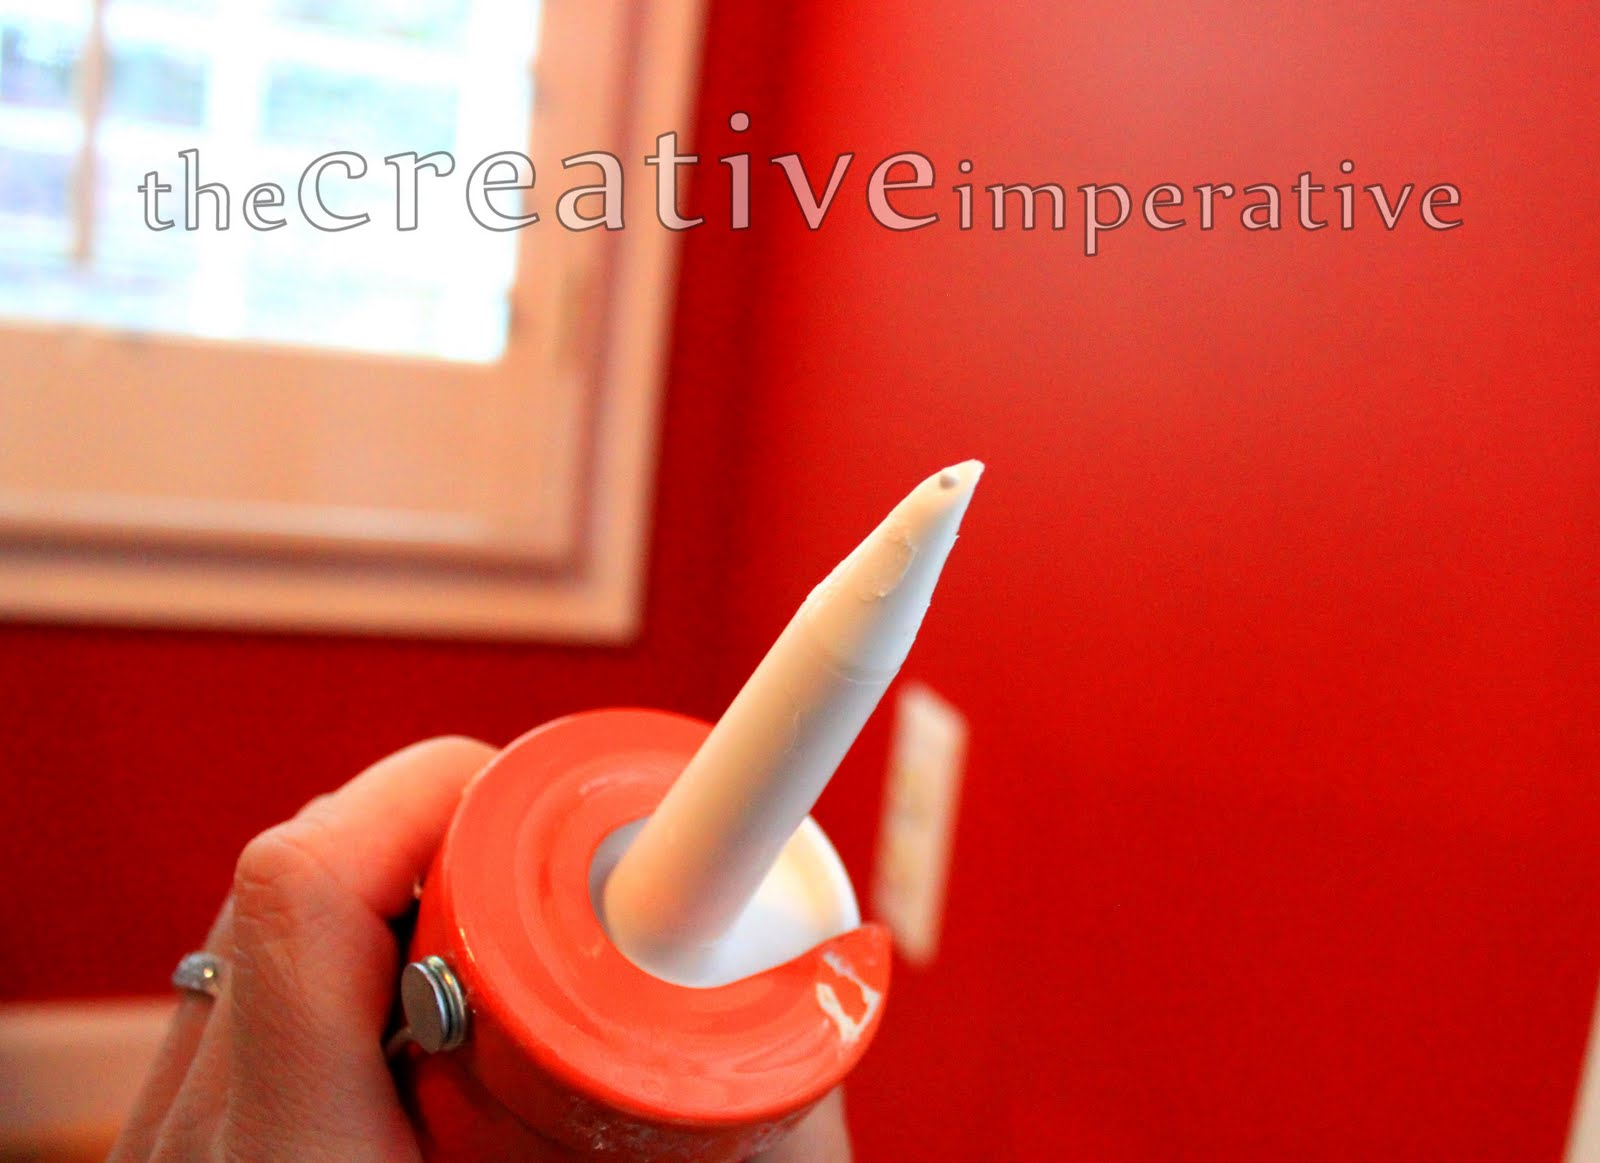 Tips For Caulking Trim The Creative Imperative Tricks Of The Trade Caulk Is Cheap